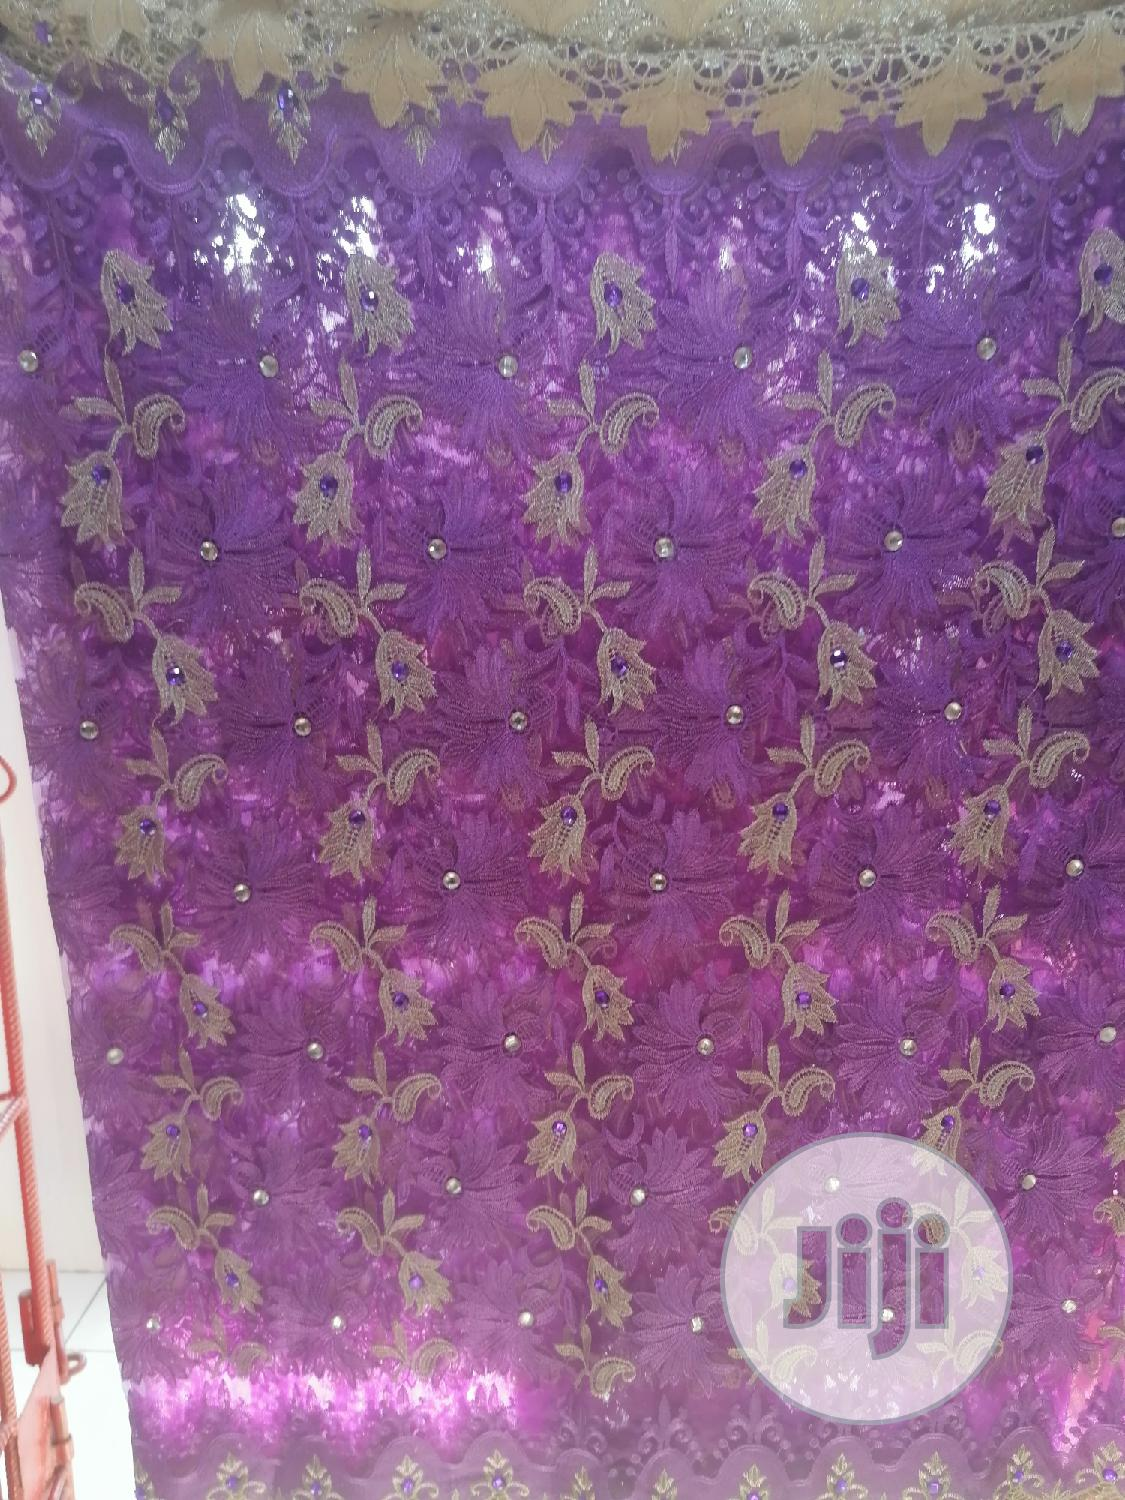 3D Flower Embroidery Purple And Champagne Gold | Wedding Wear & Accessories for sale in Ikoyi, Lagos State, Nigeria